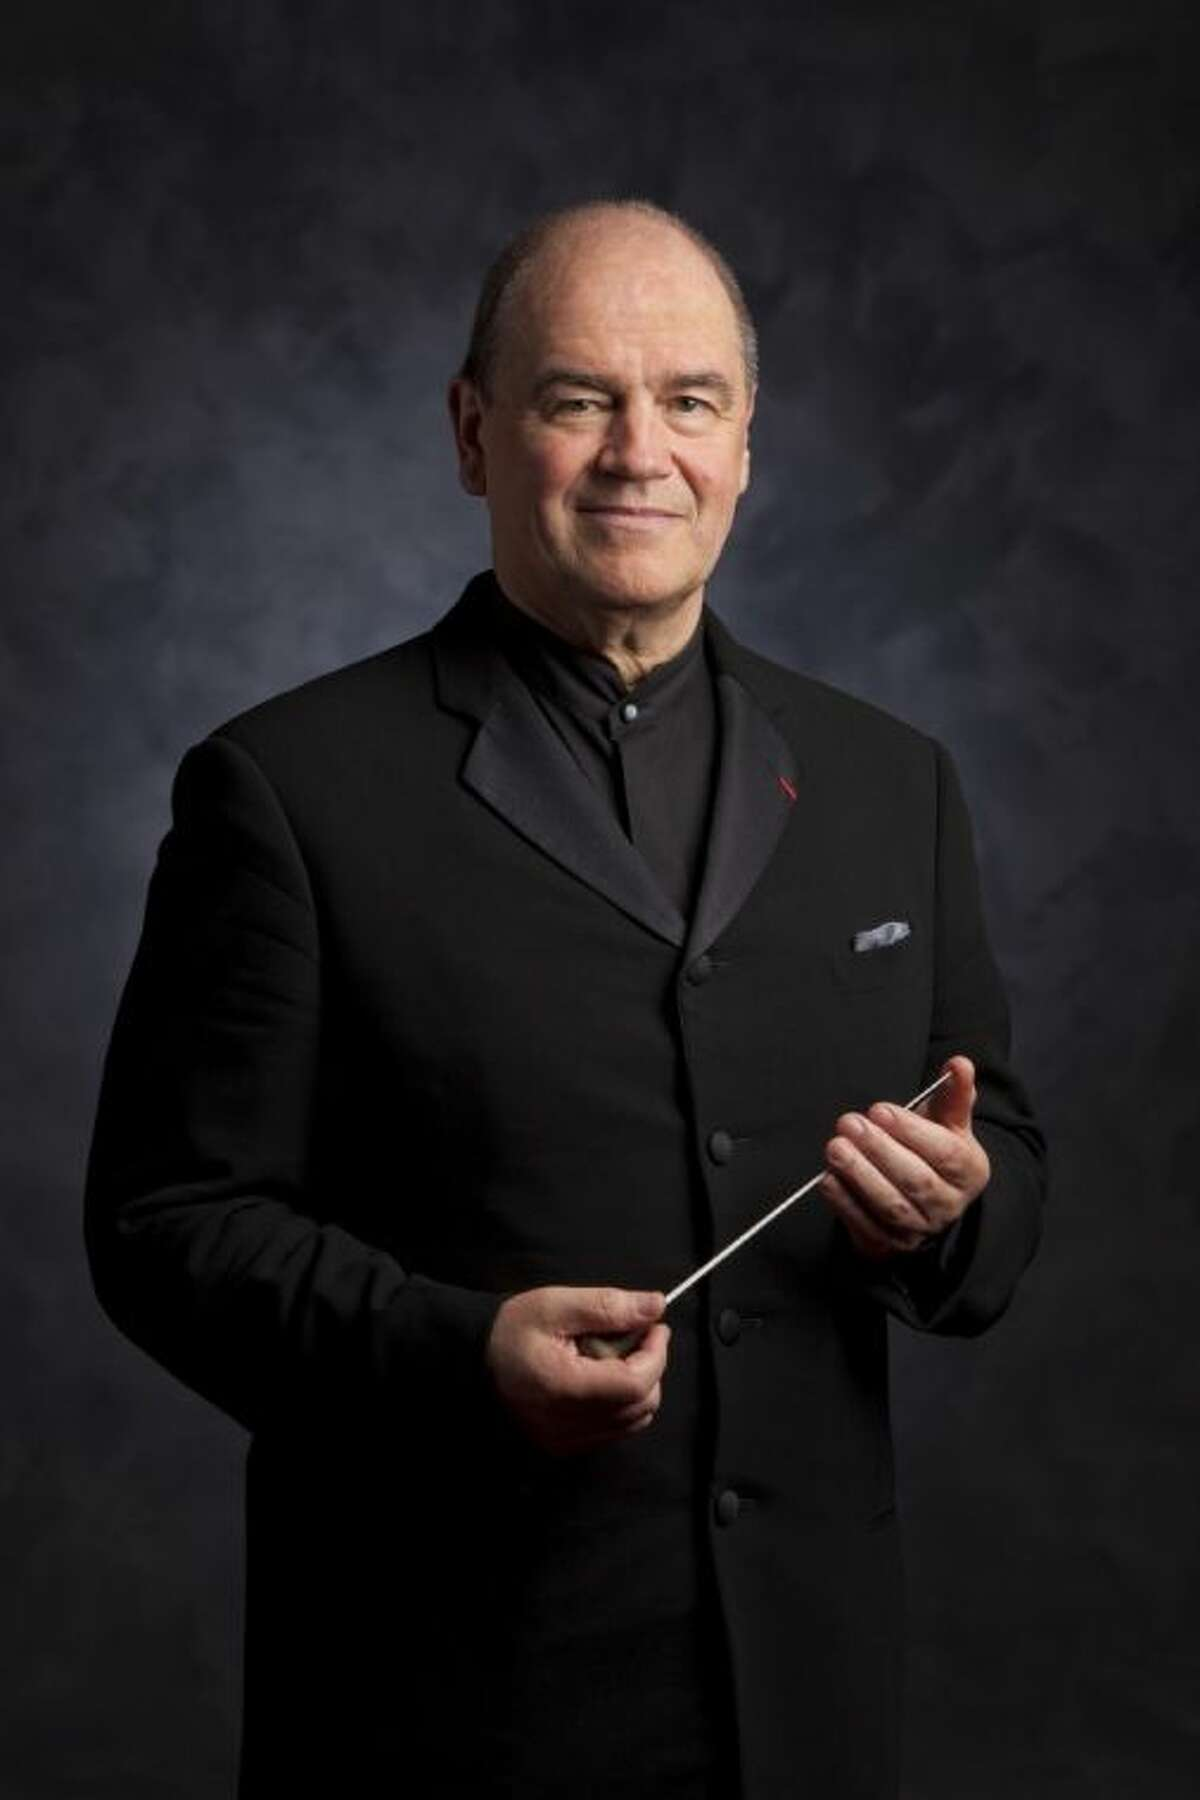 Houston Symphony Conductor Hans Graf will celebrate his farewell concert at The Cynthia Woods Mitchell Pavilion Friday night.